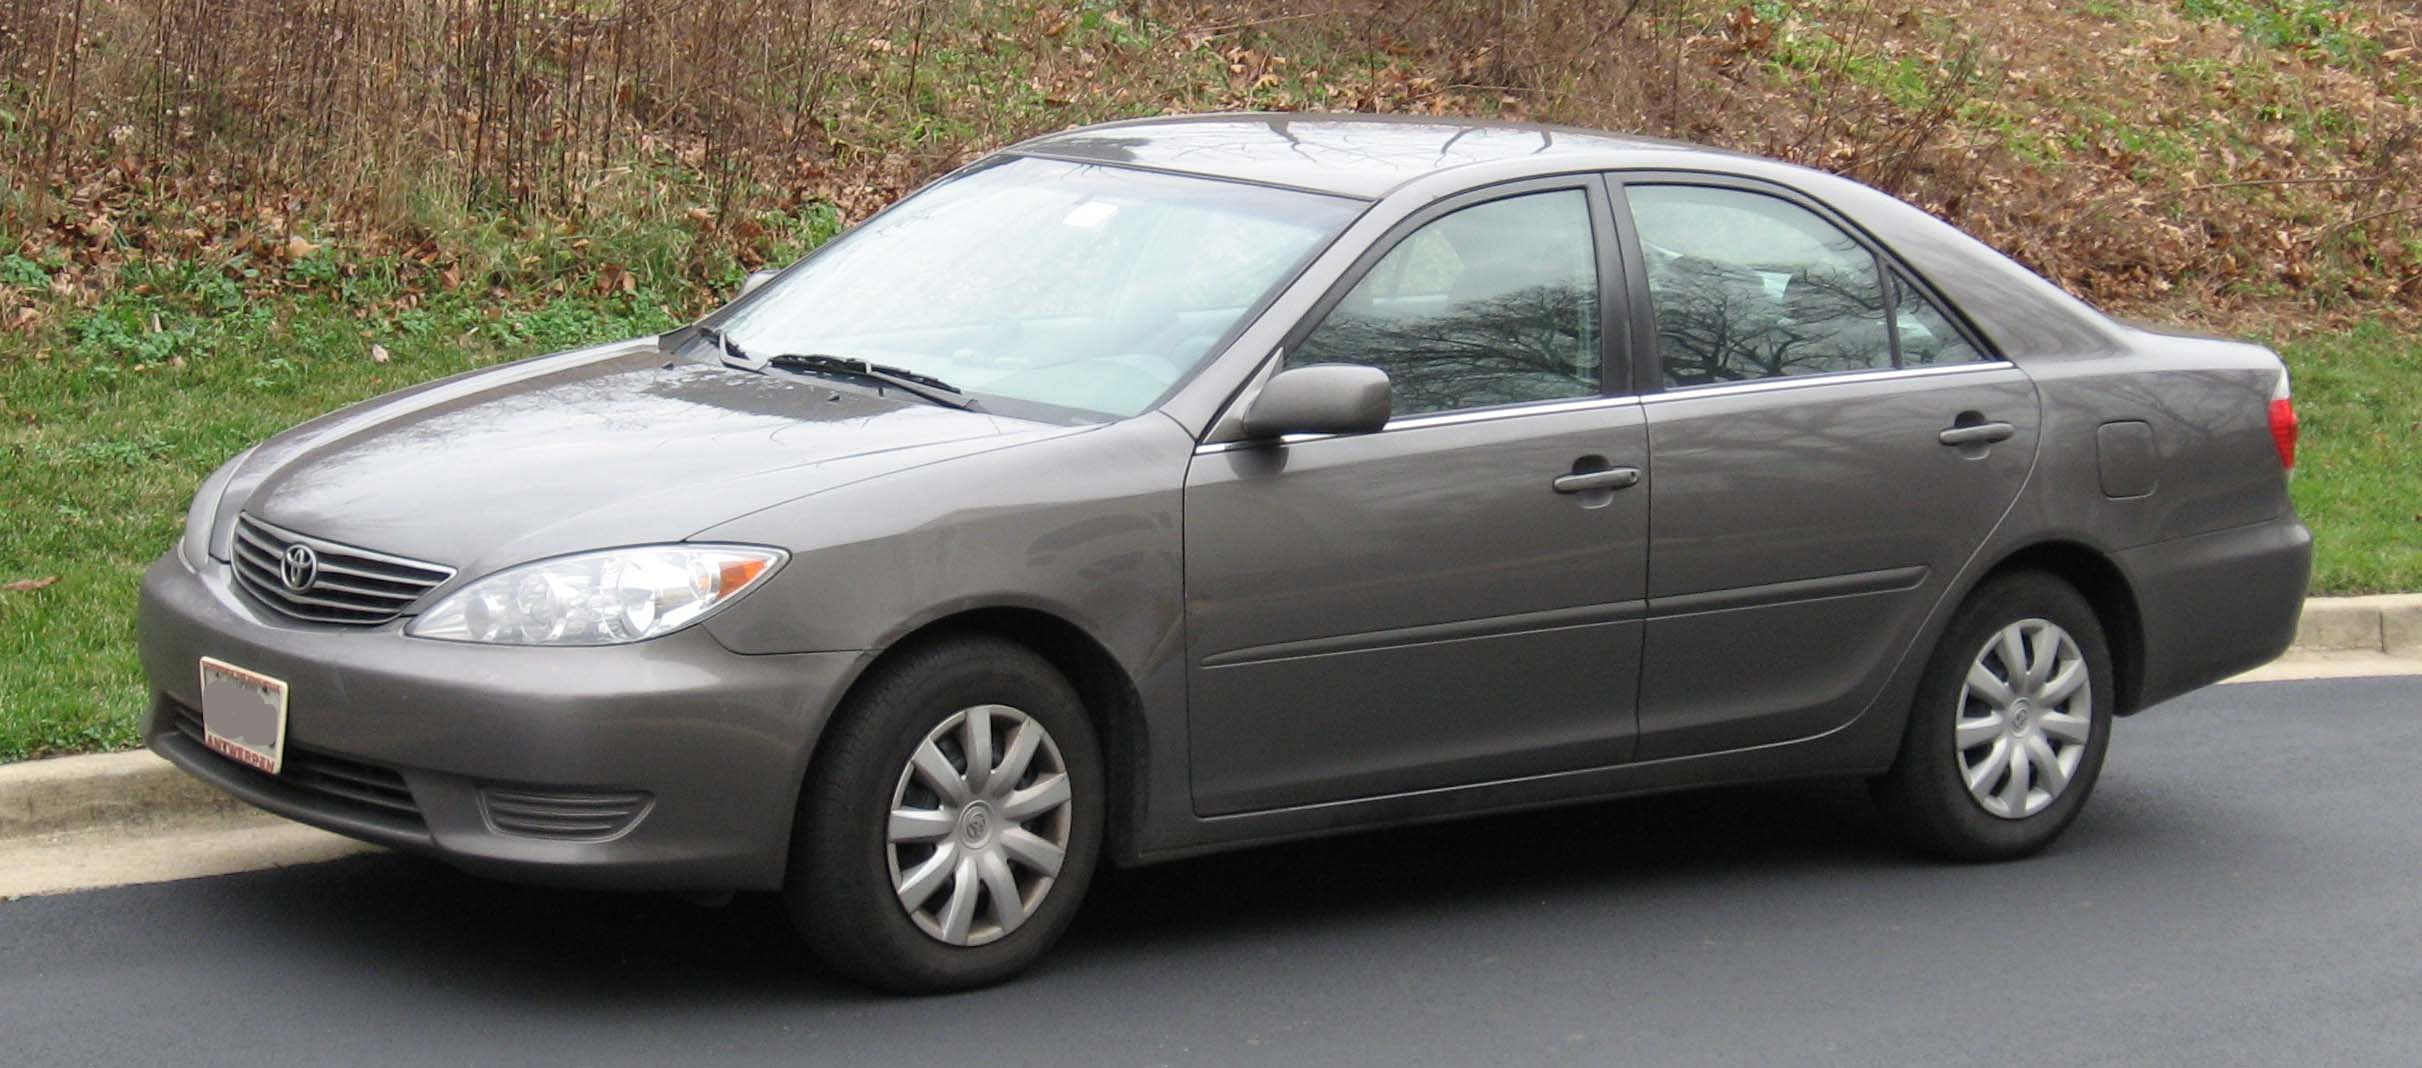 2006 toyota camry photos informations articles. Black Bedroom Furniture Sets. Home Design Ideas